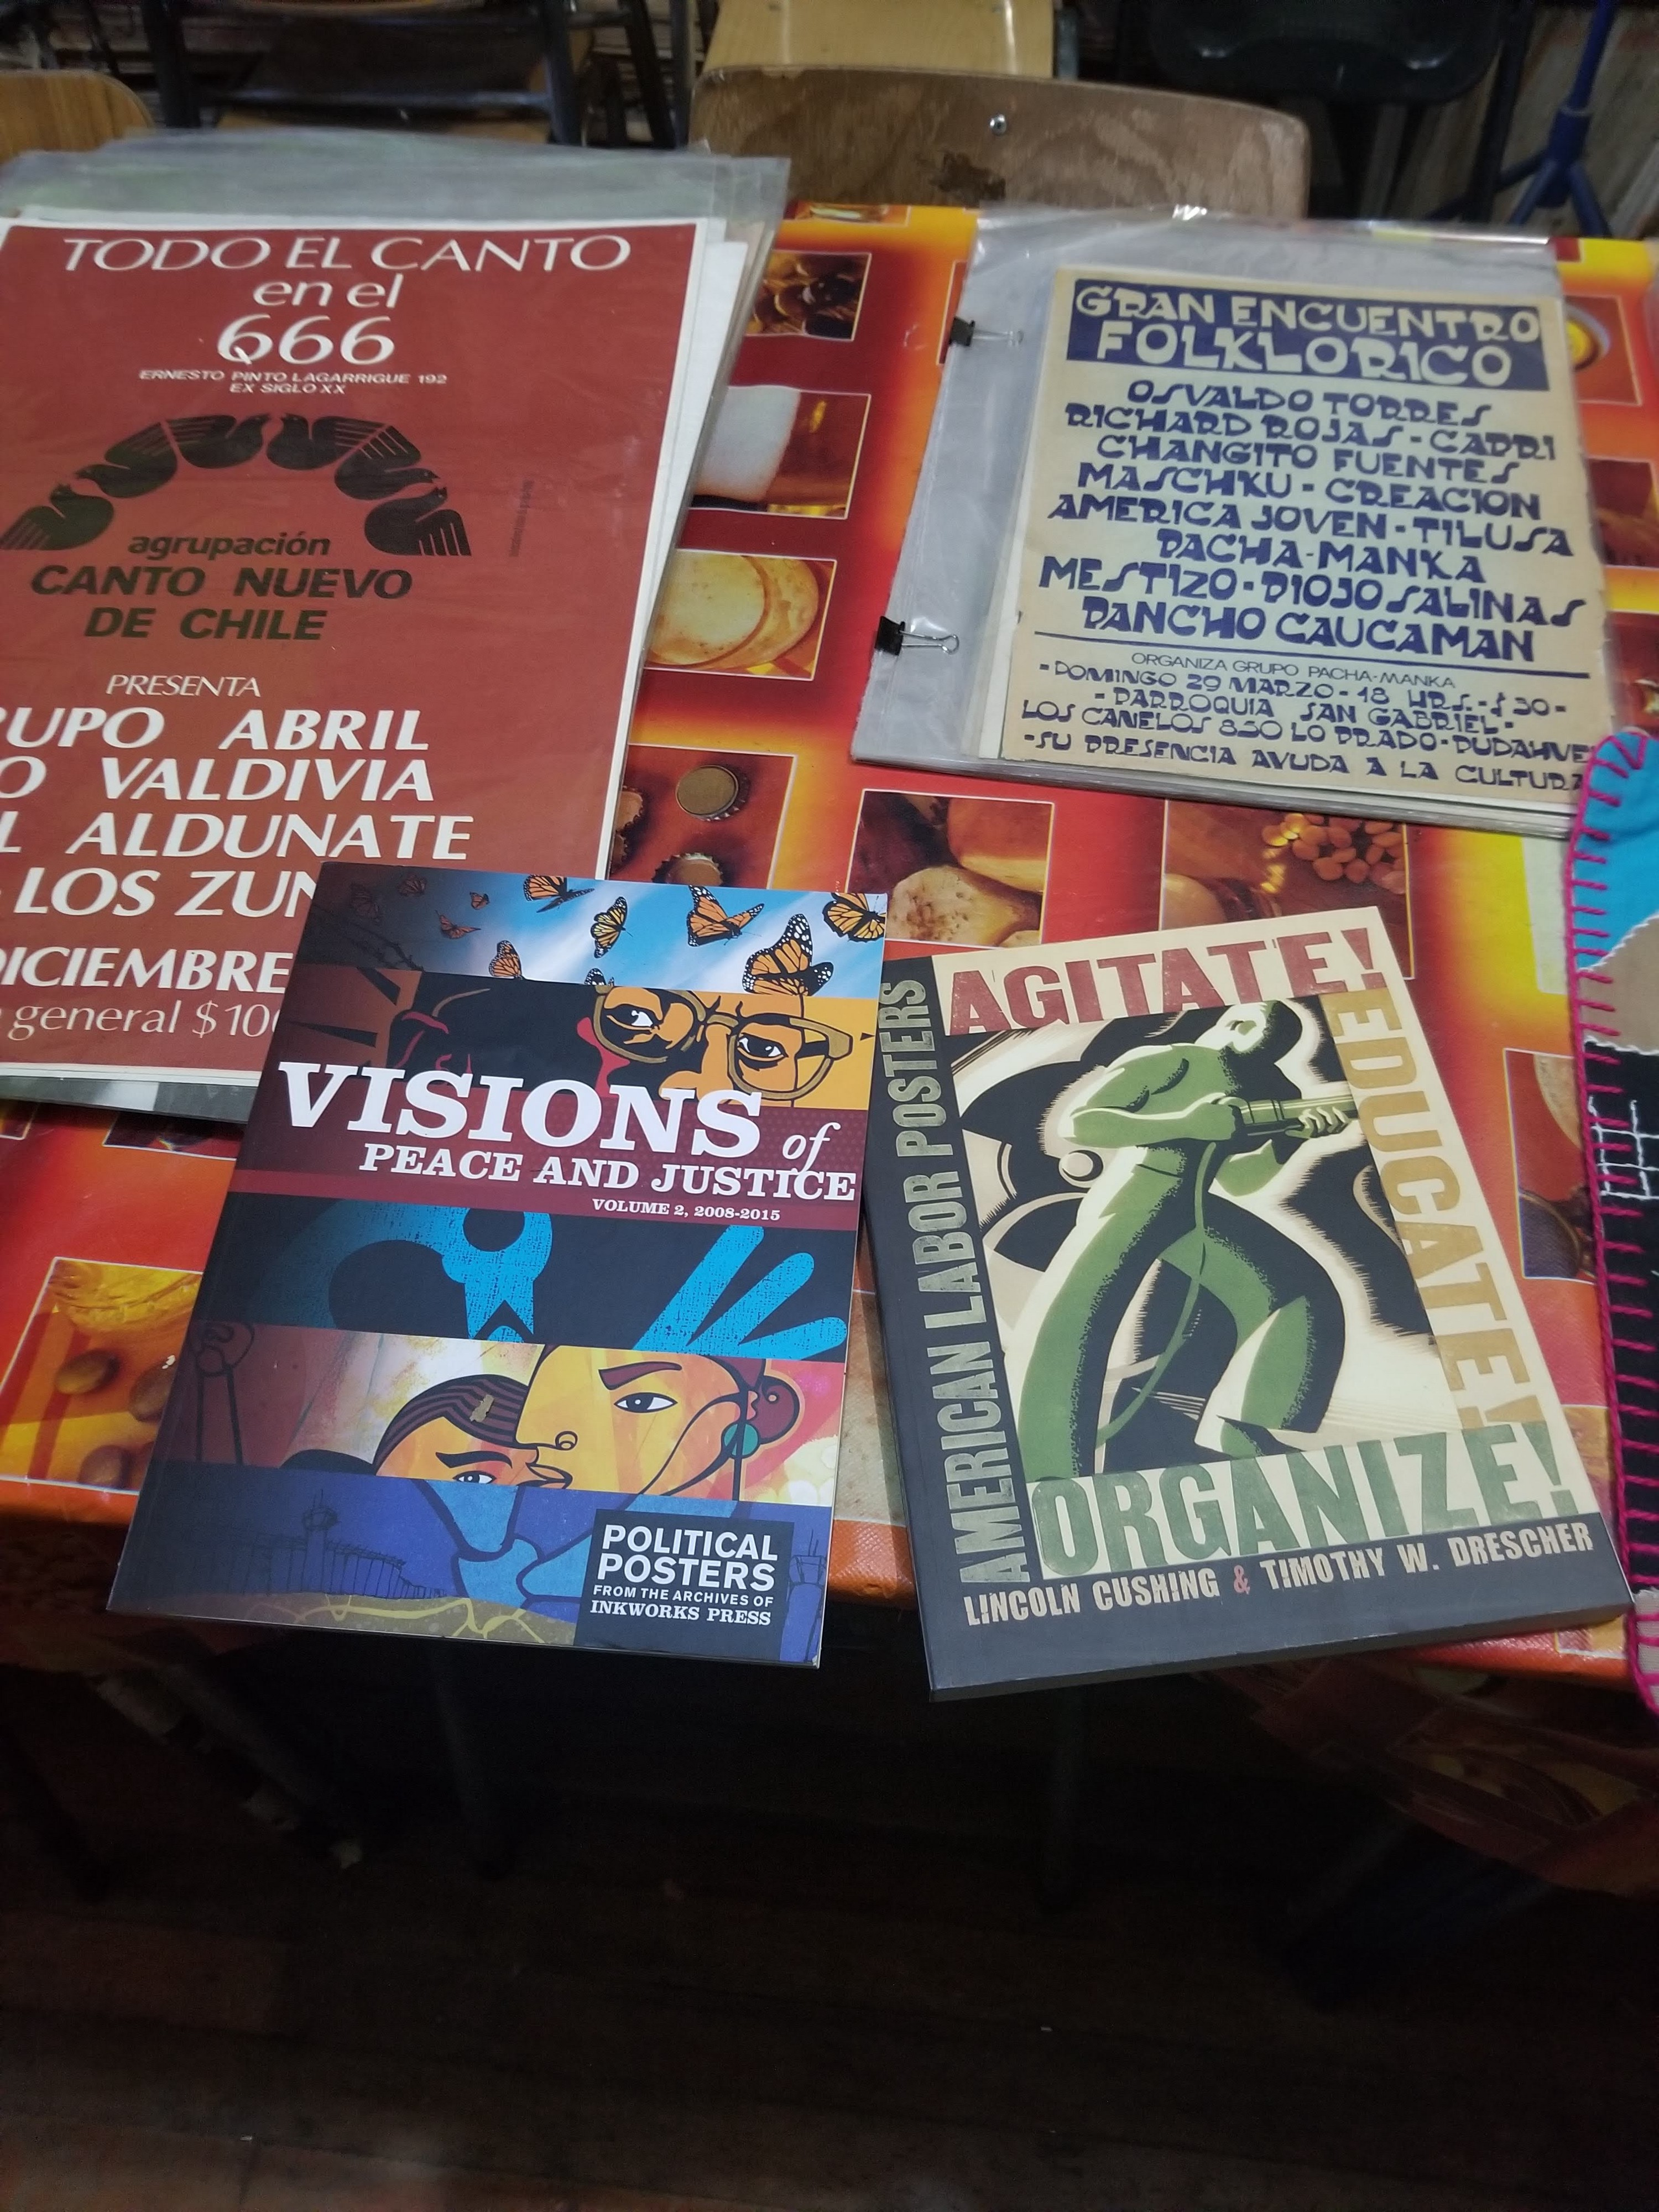 Photo of books, posters, and flyers from the Archive of the Graphic Resistance in Santiago, Chile